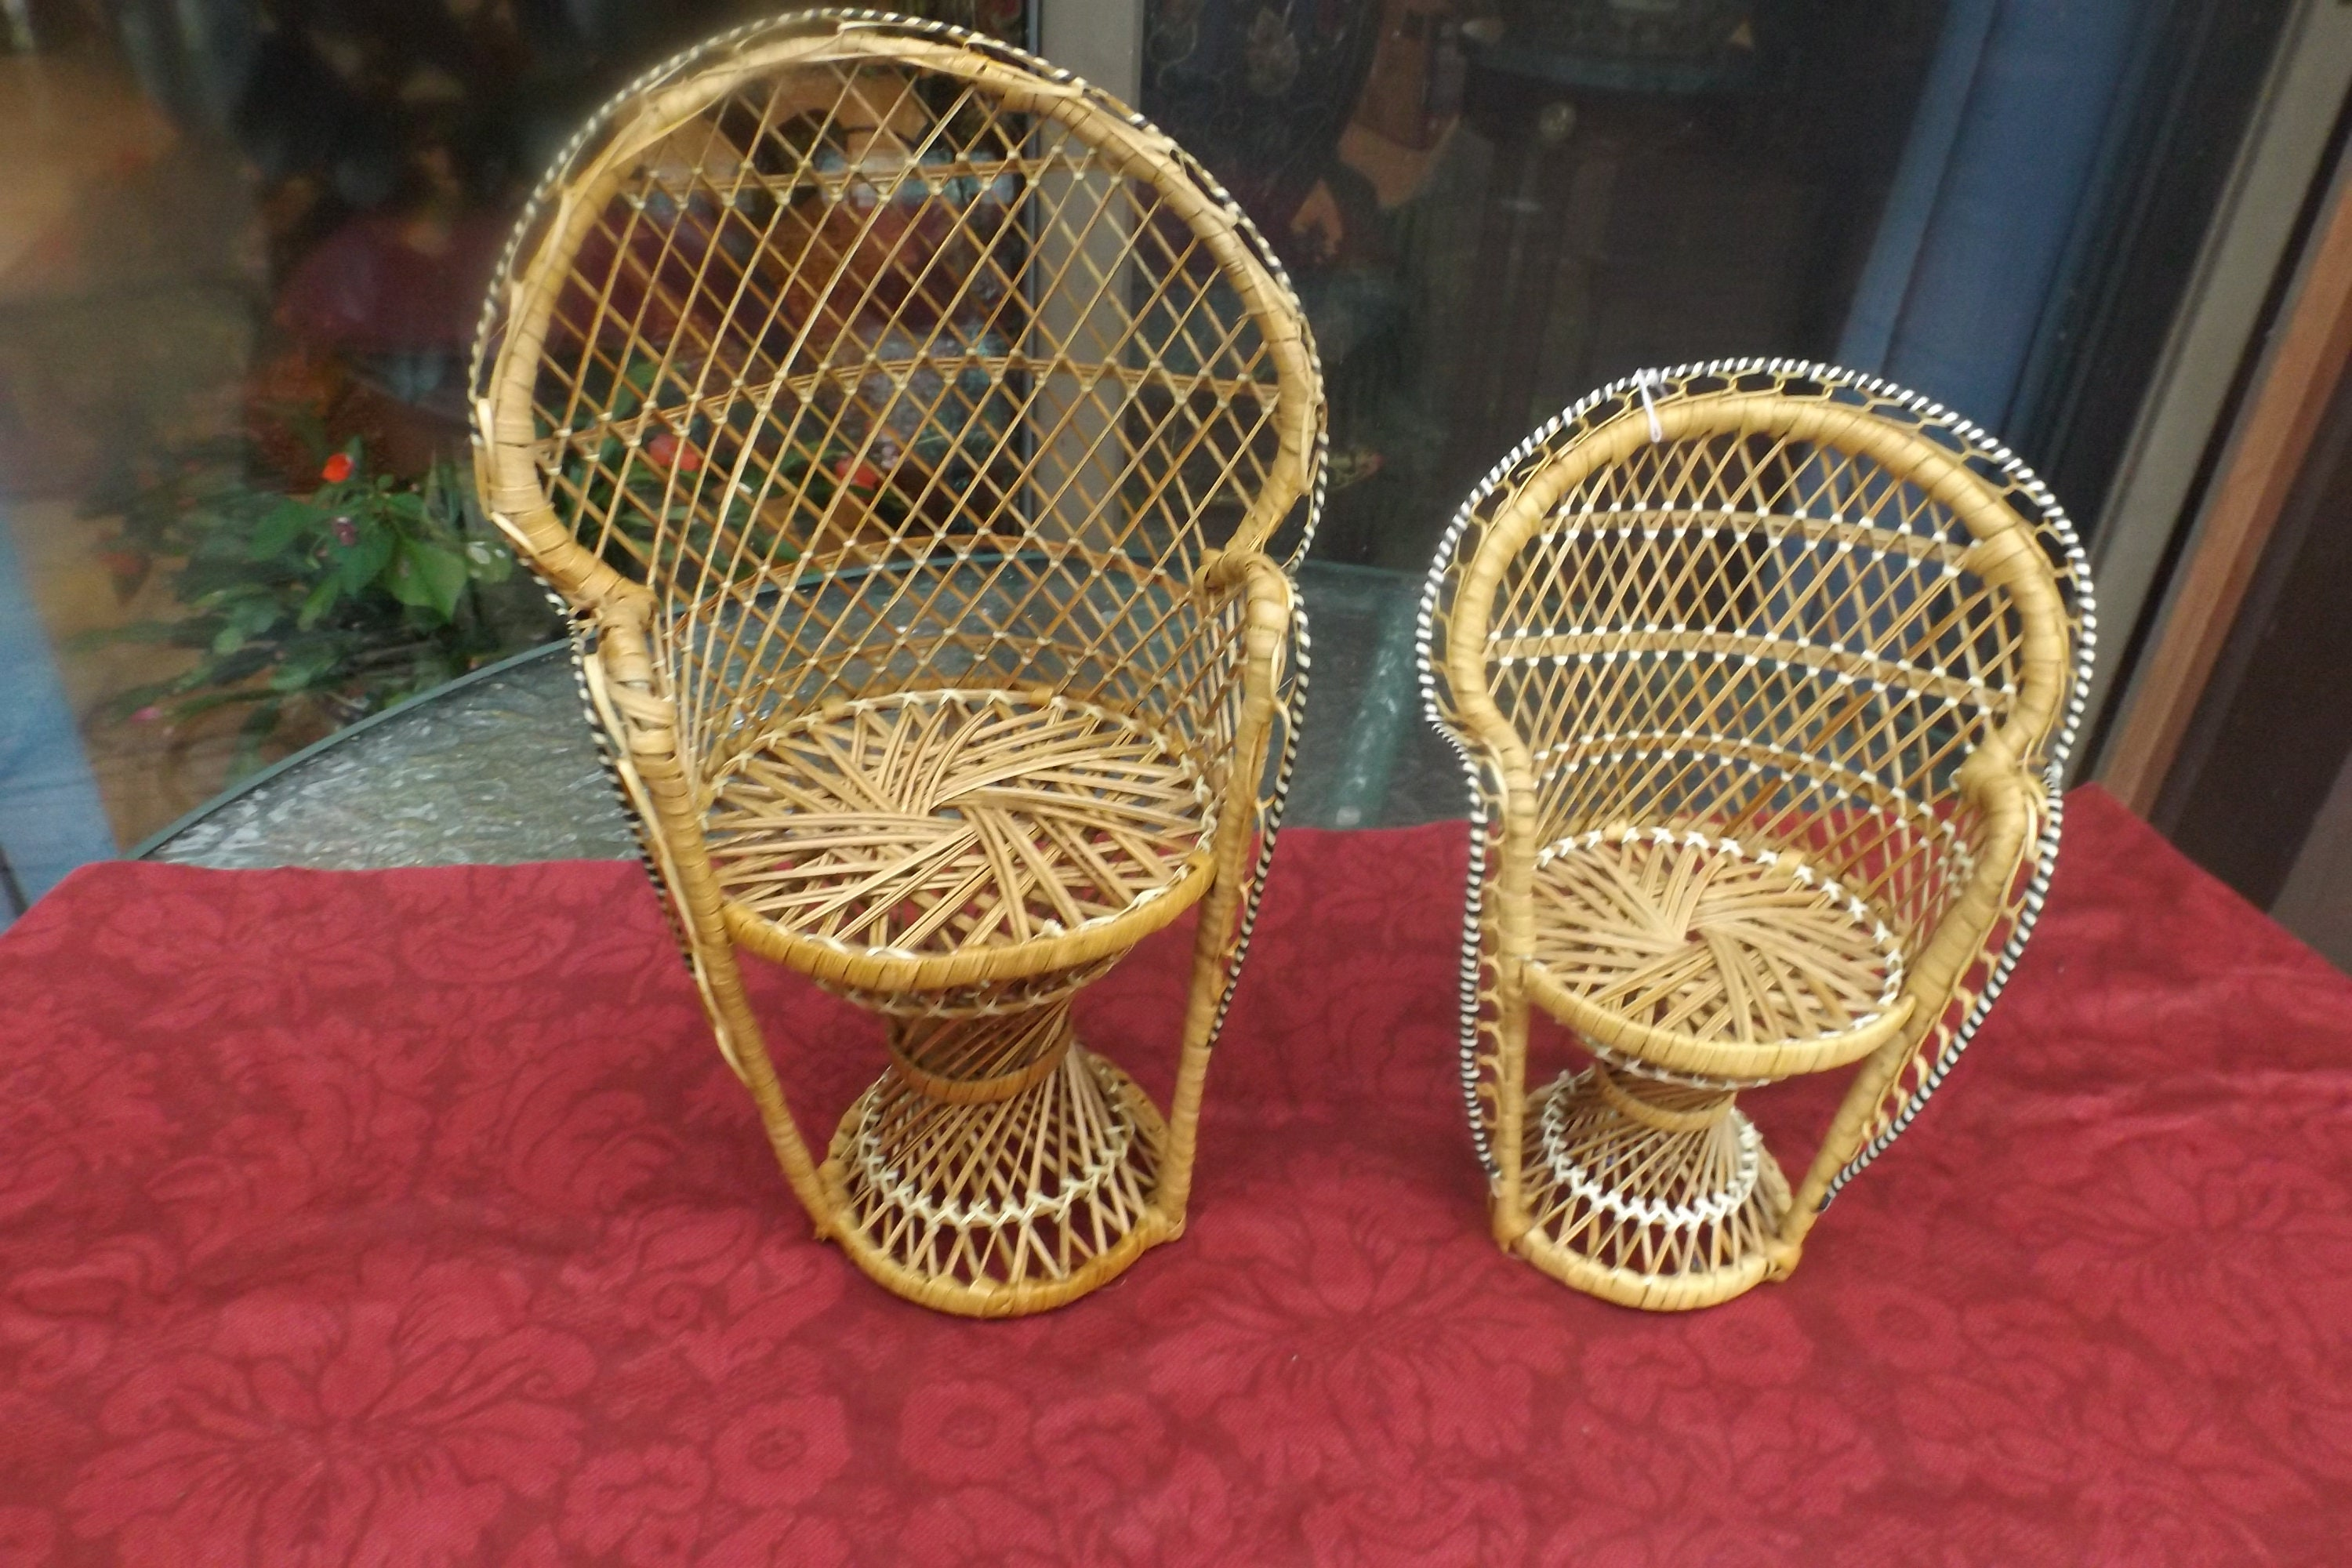 Vintage Wicker High Back Peacock Chair For Dolls Doll House Choice High Chair Smaller Chair Or Both Gift Idea